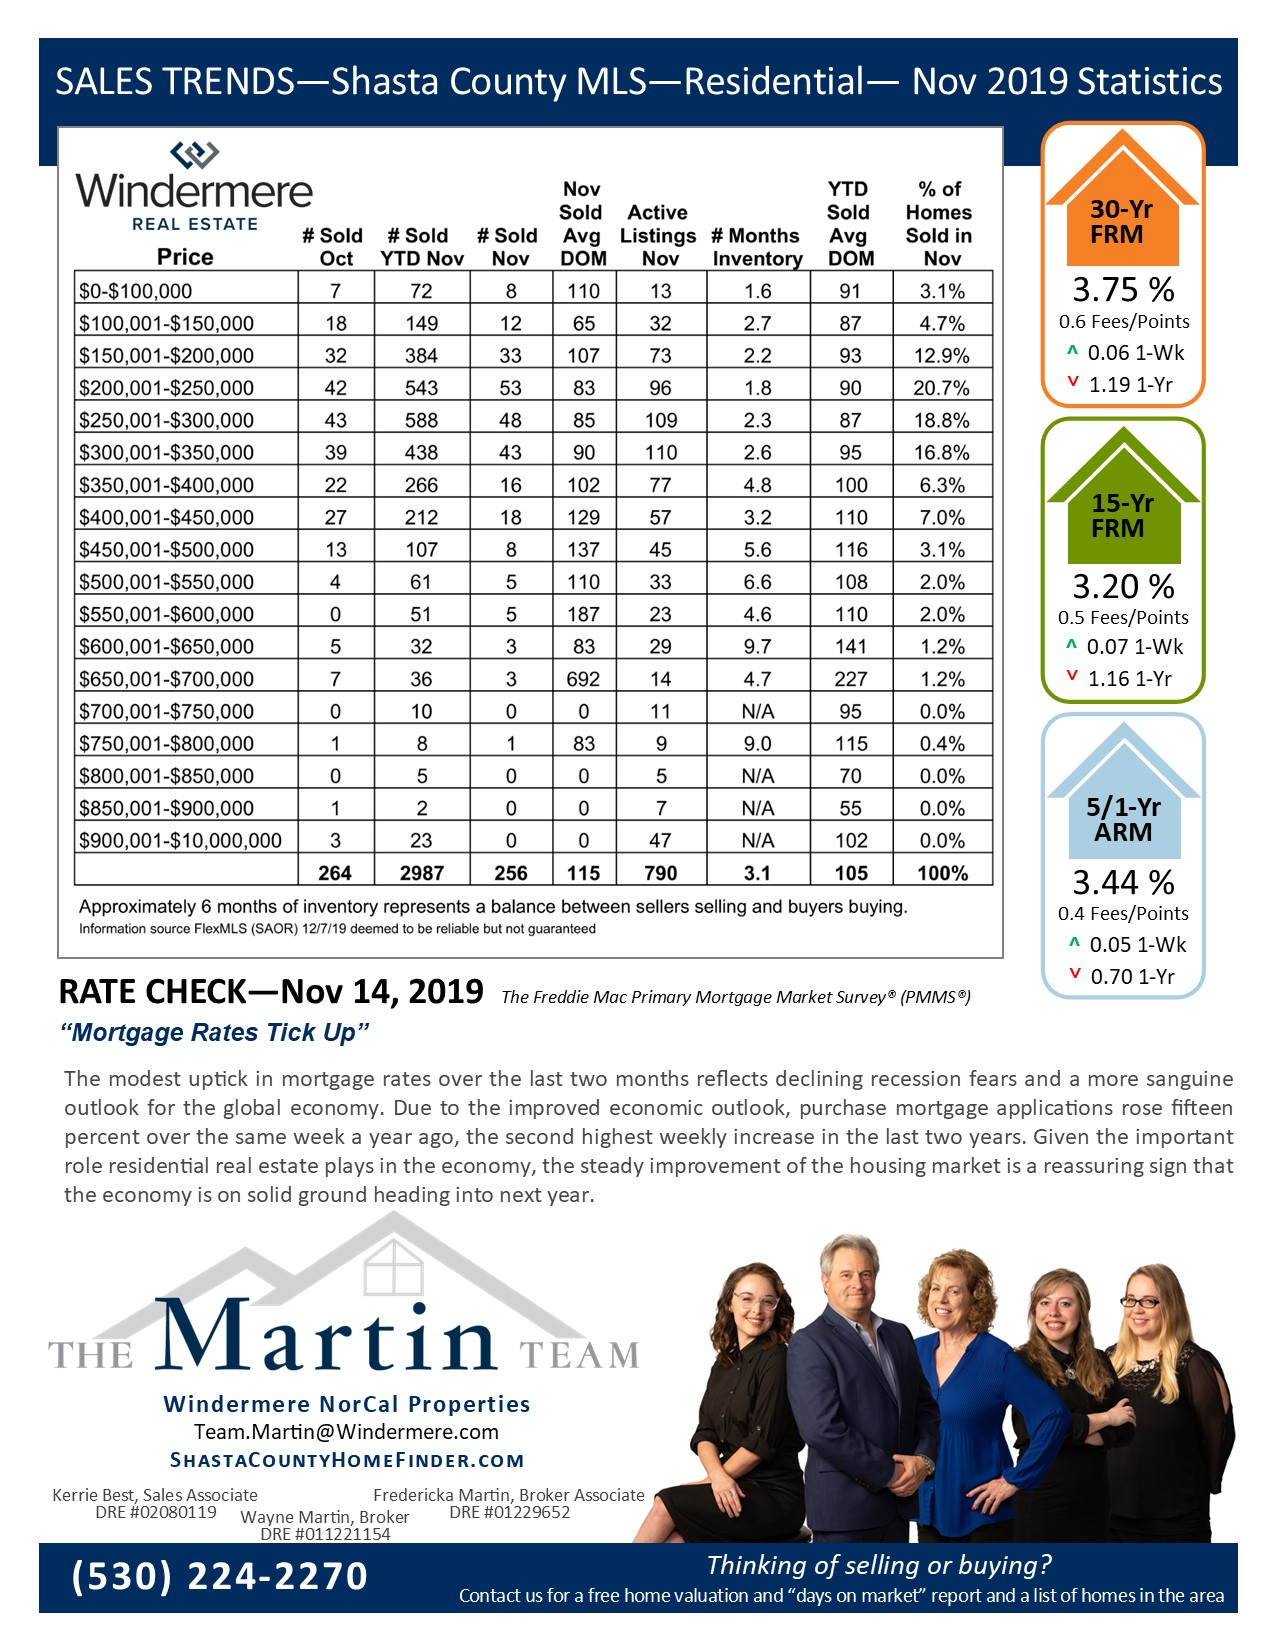 Sales Trends Reports Nov 2019. Mortgage rates and statistics on residential sales for Nov 2019.